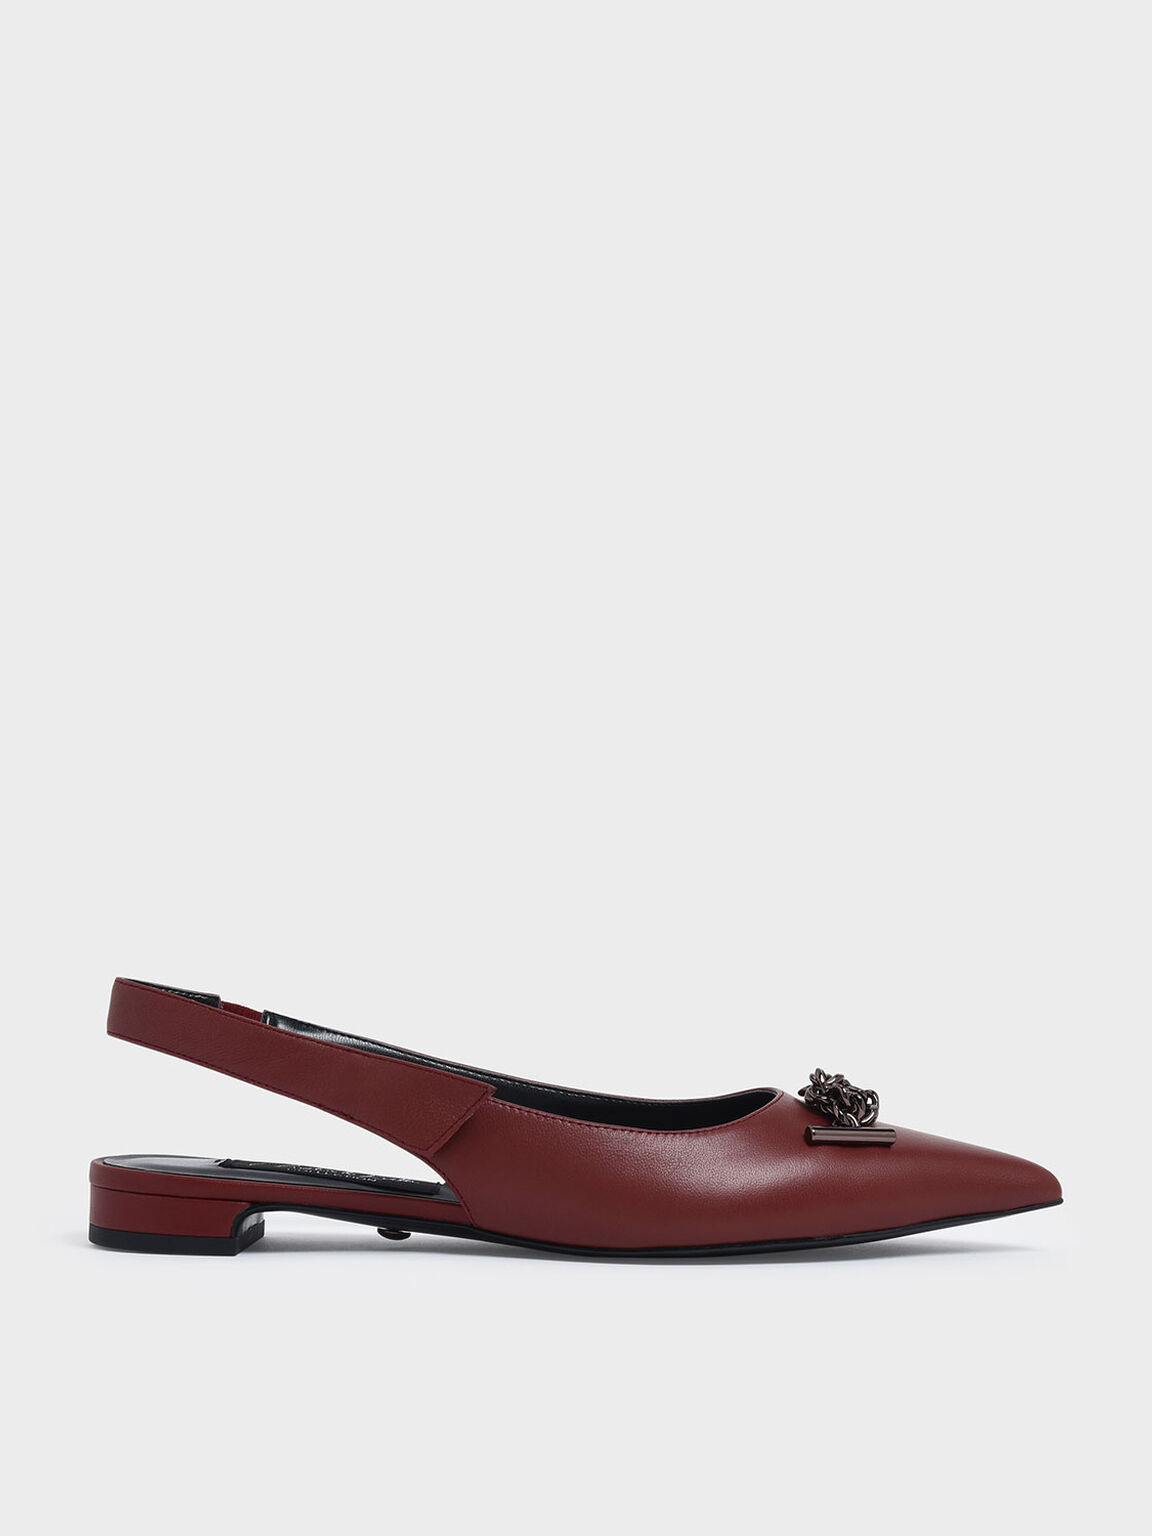 Knotted Chain Detail Leather Slingback Flats, Red, hi-res